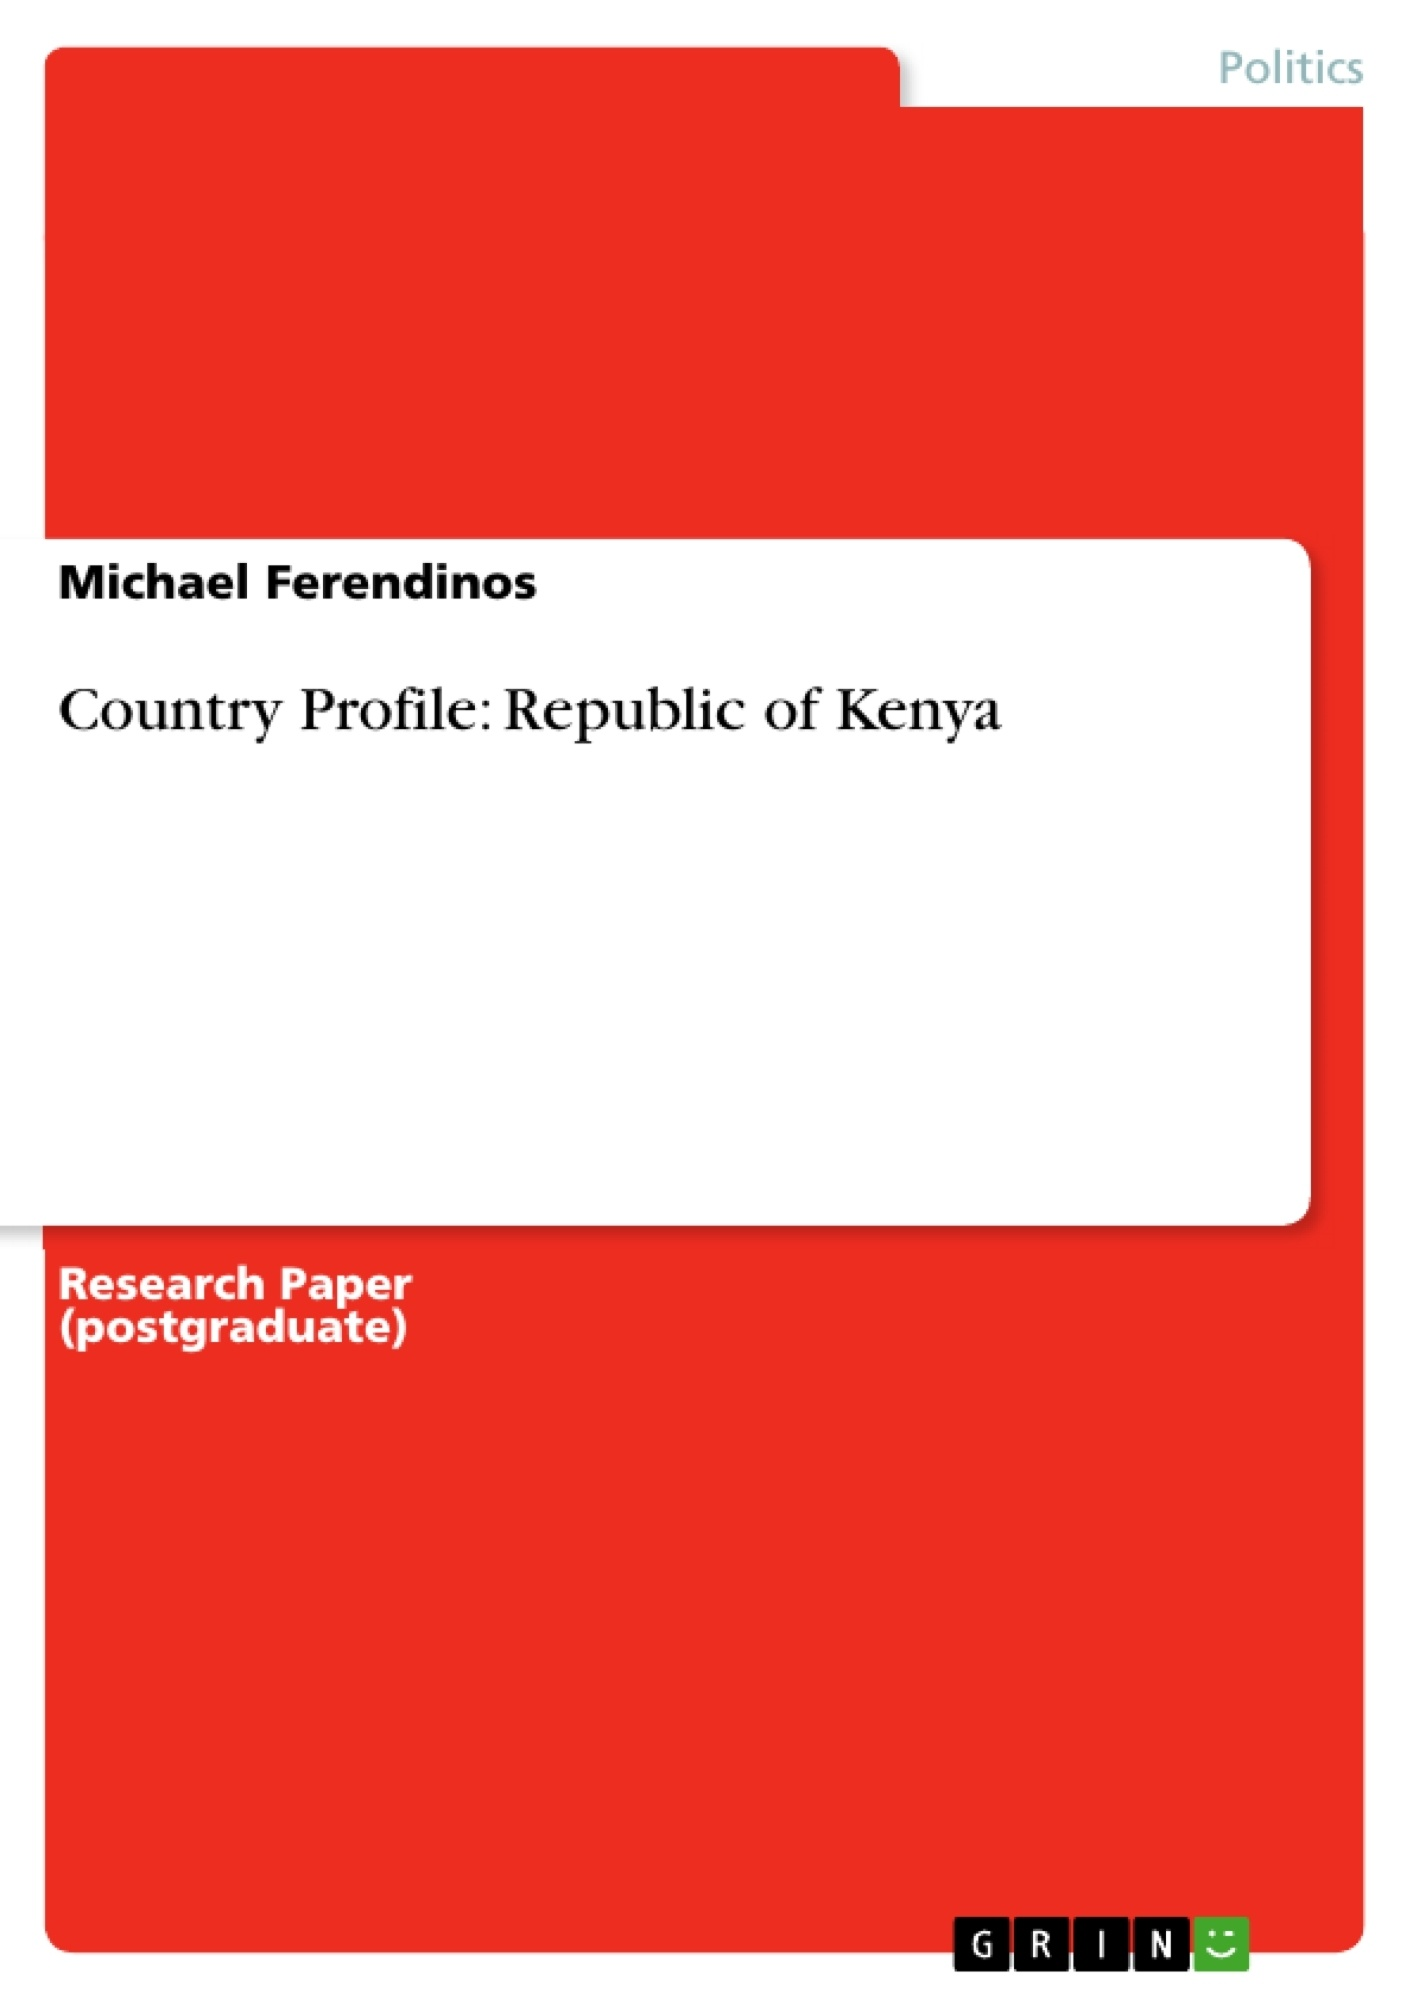 Title: Country Profile: Republic of Kenya